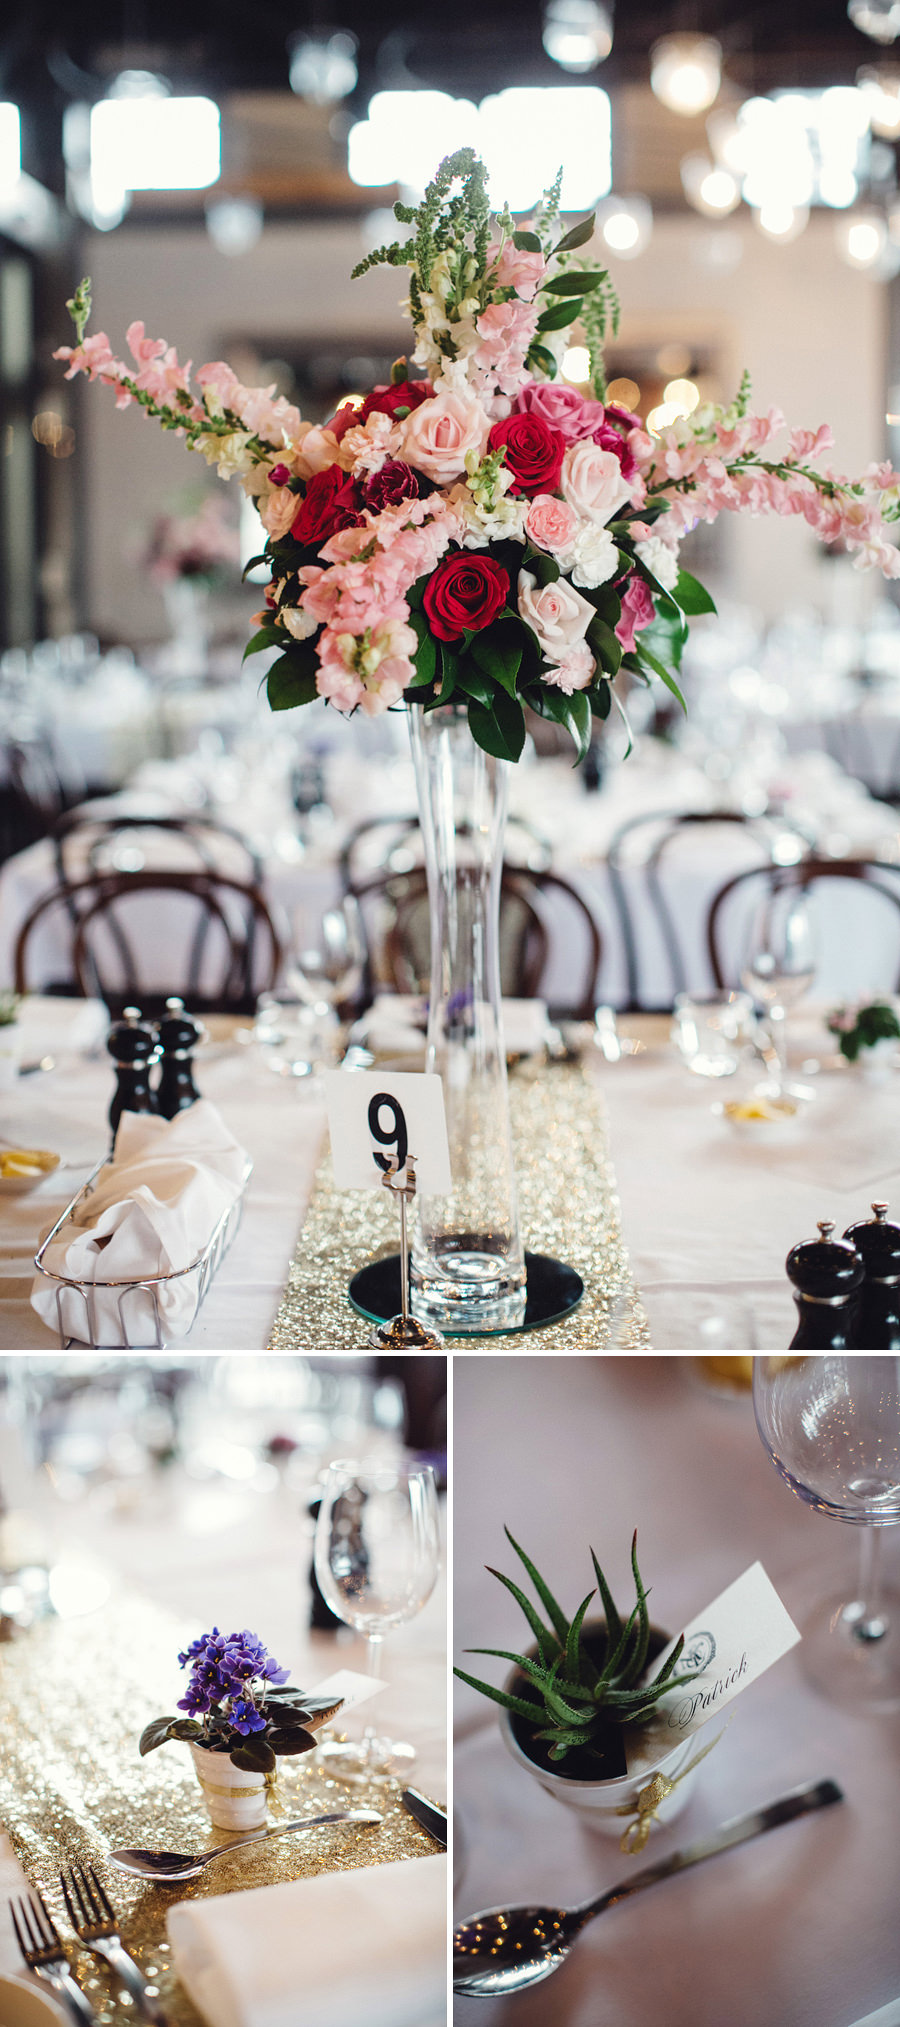 View By Sydney Wedding Photographers: Reception Details